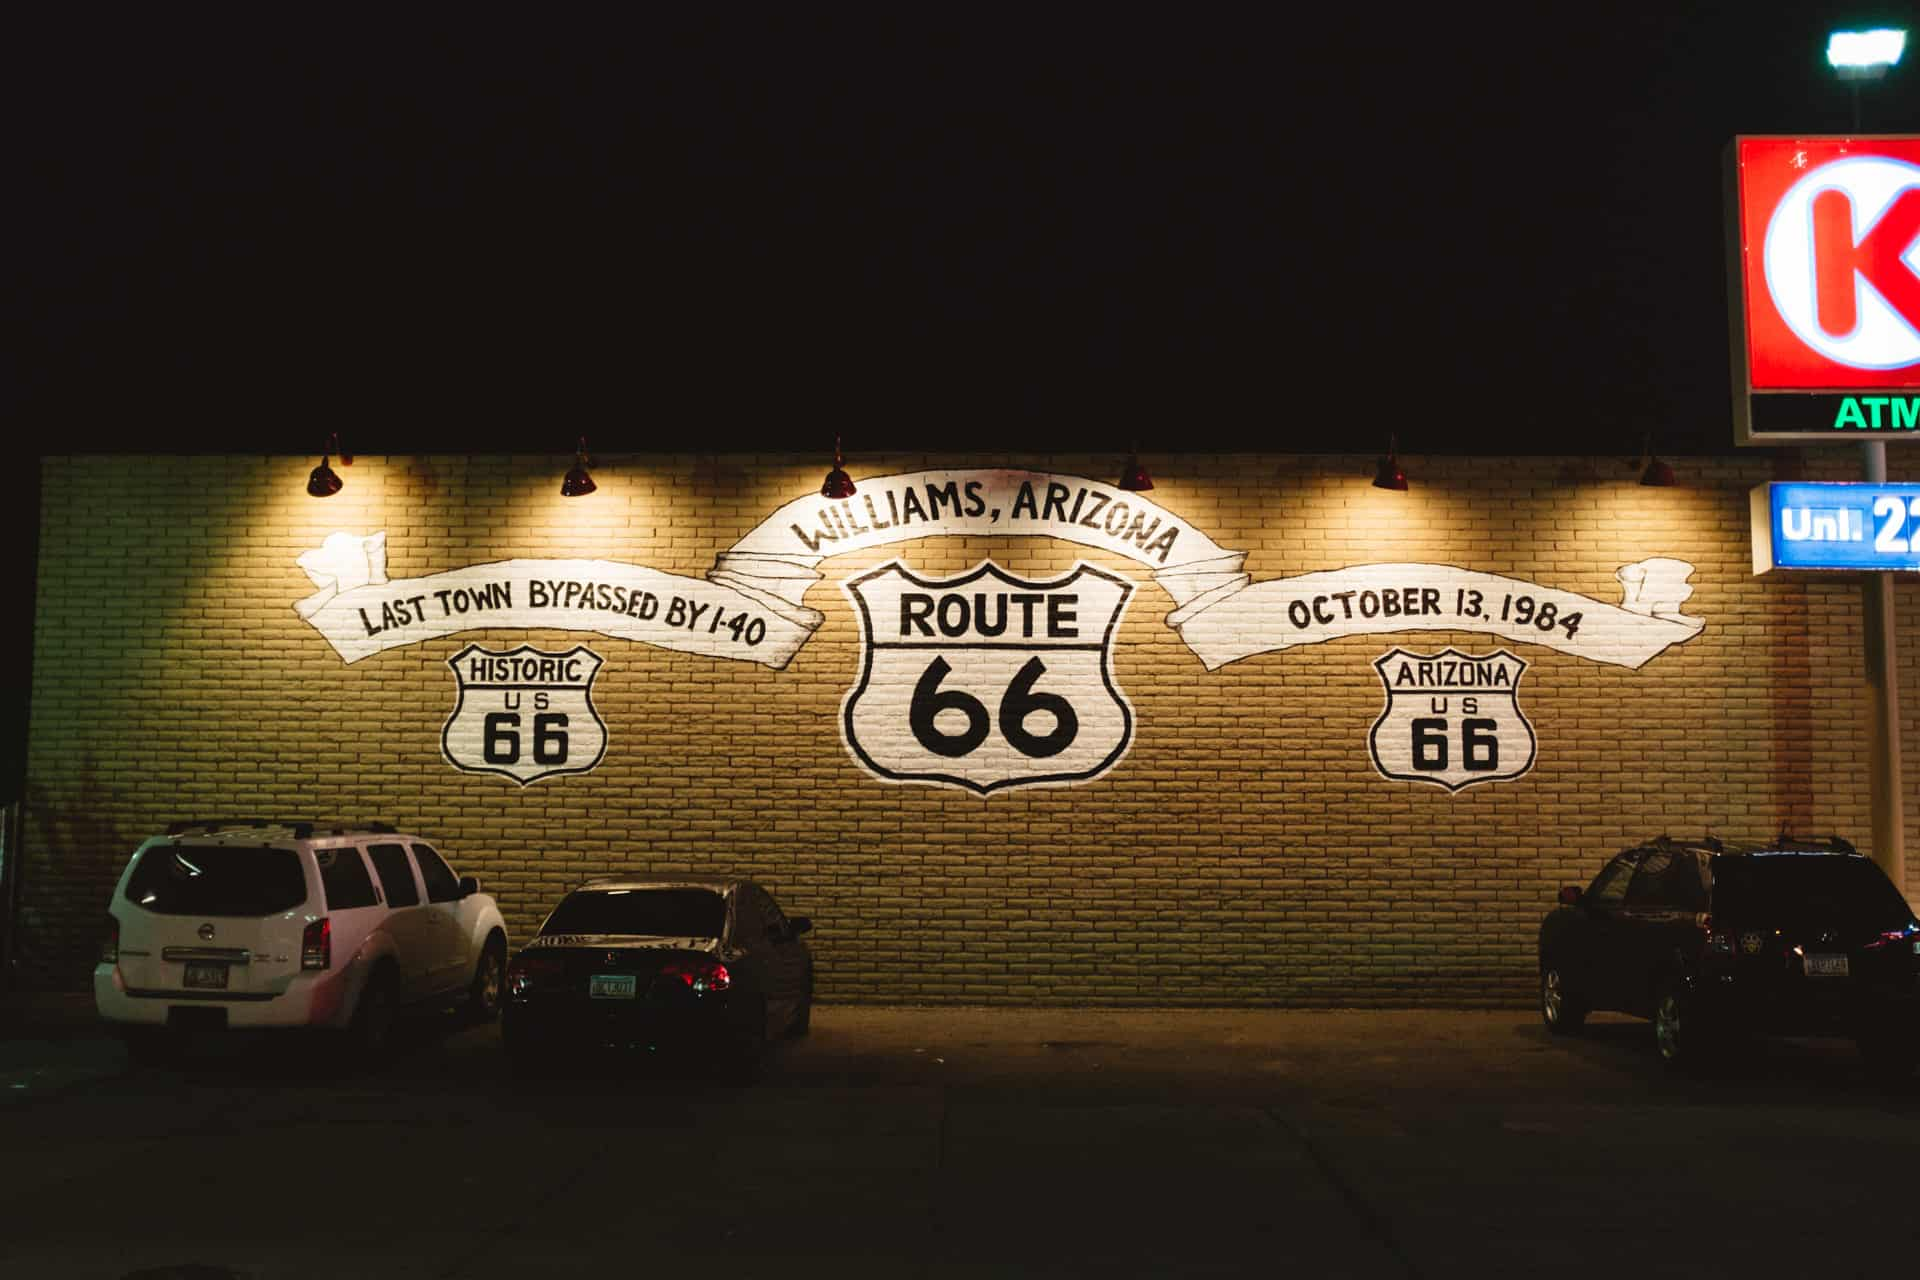 USA road trip route 66